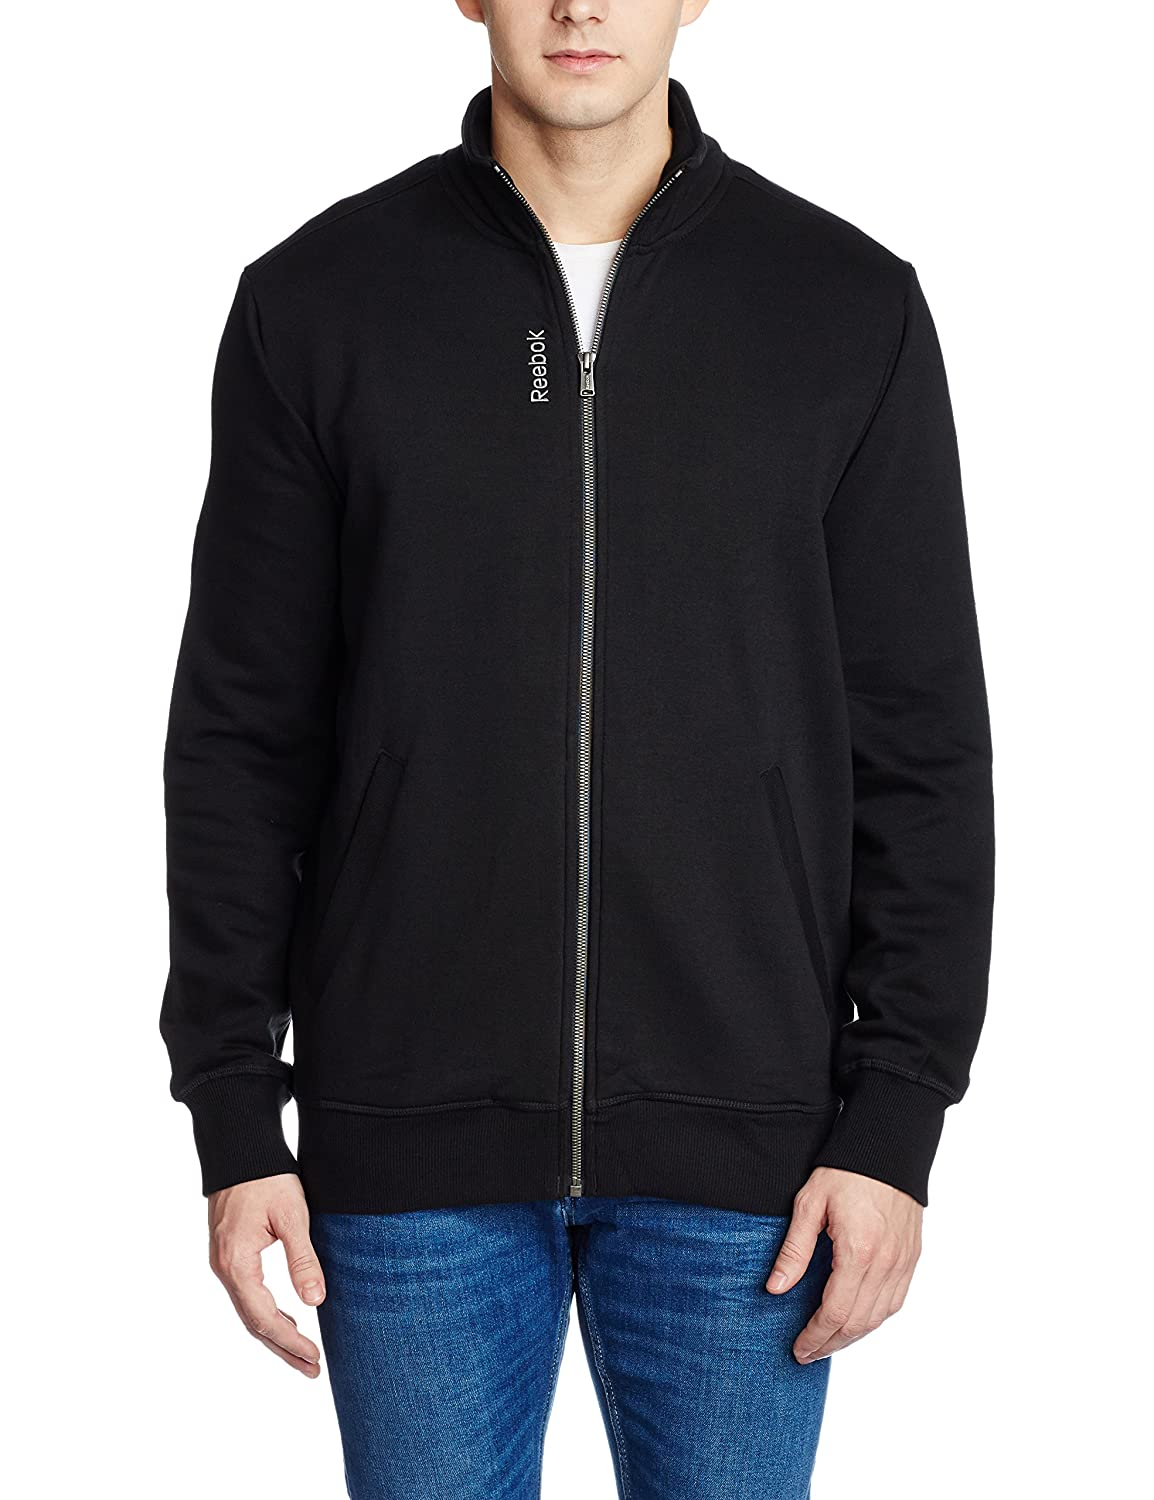 Minimum 40% Off Reebok Men's Acessories By Amazon | Reebok Men's Cotton Track Jacket @ Rs.1,539